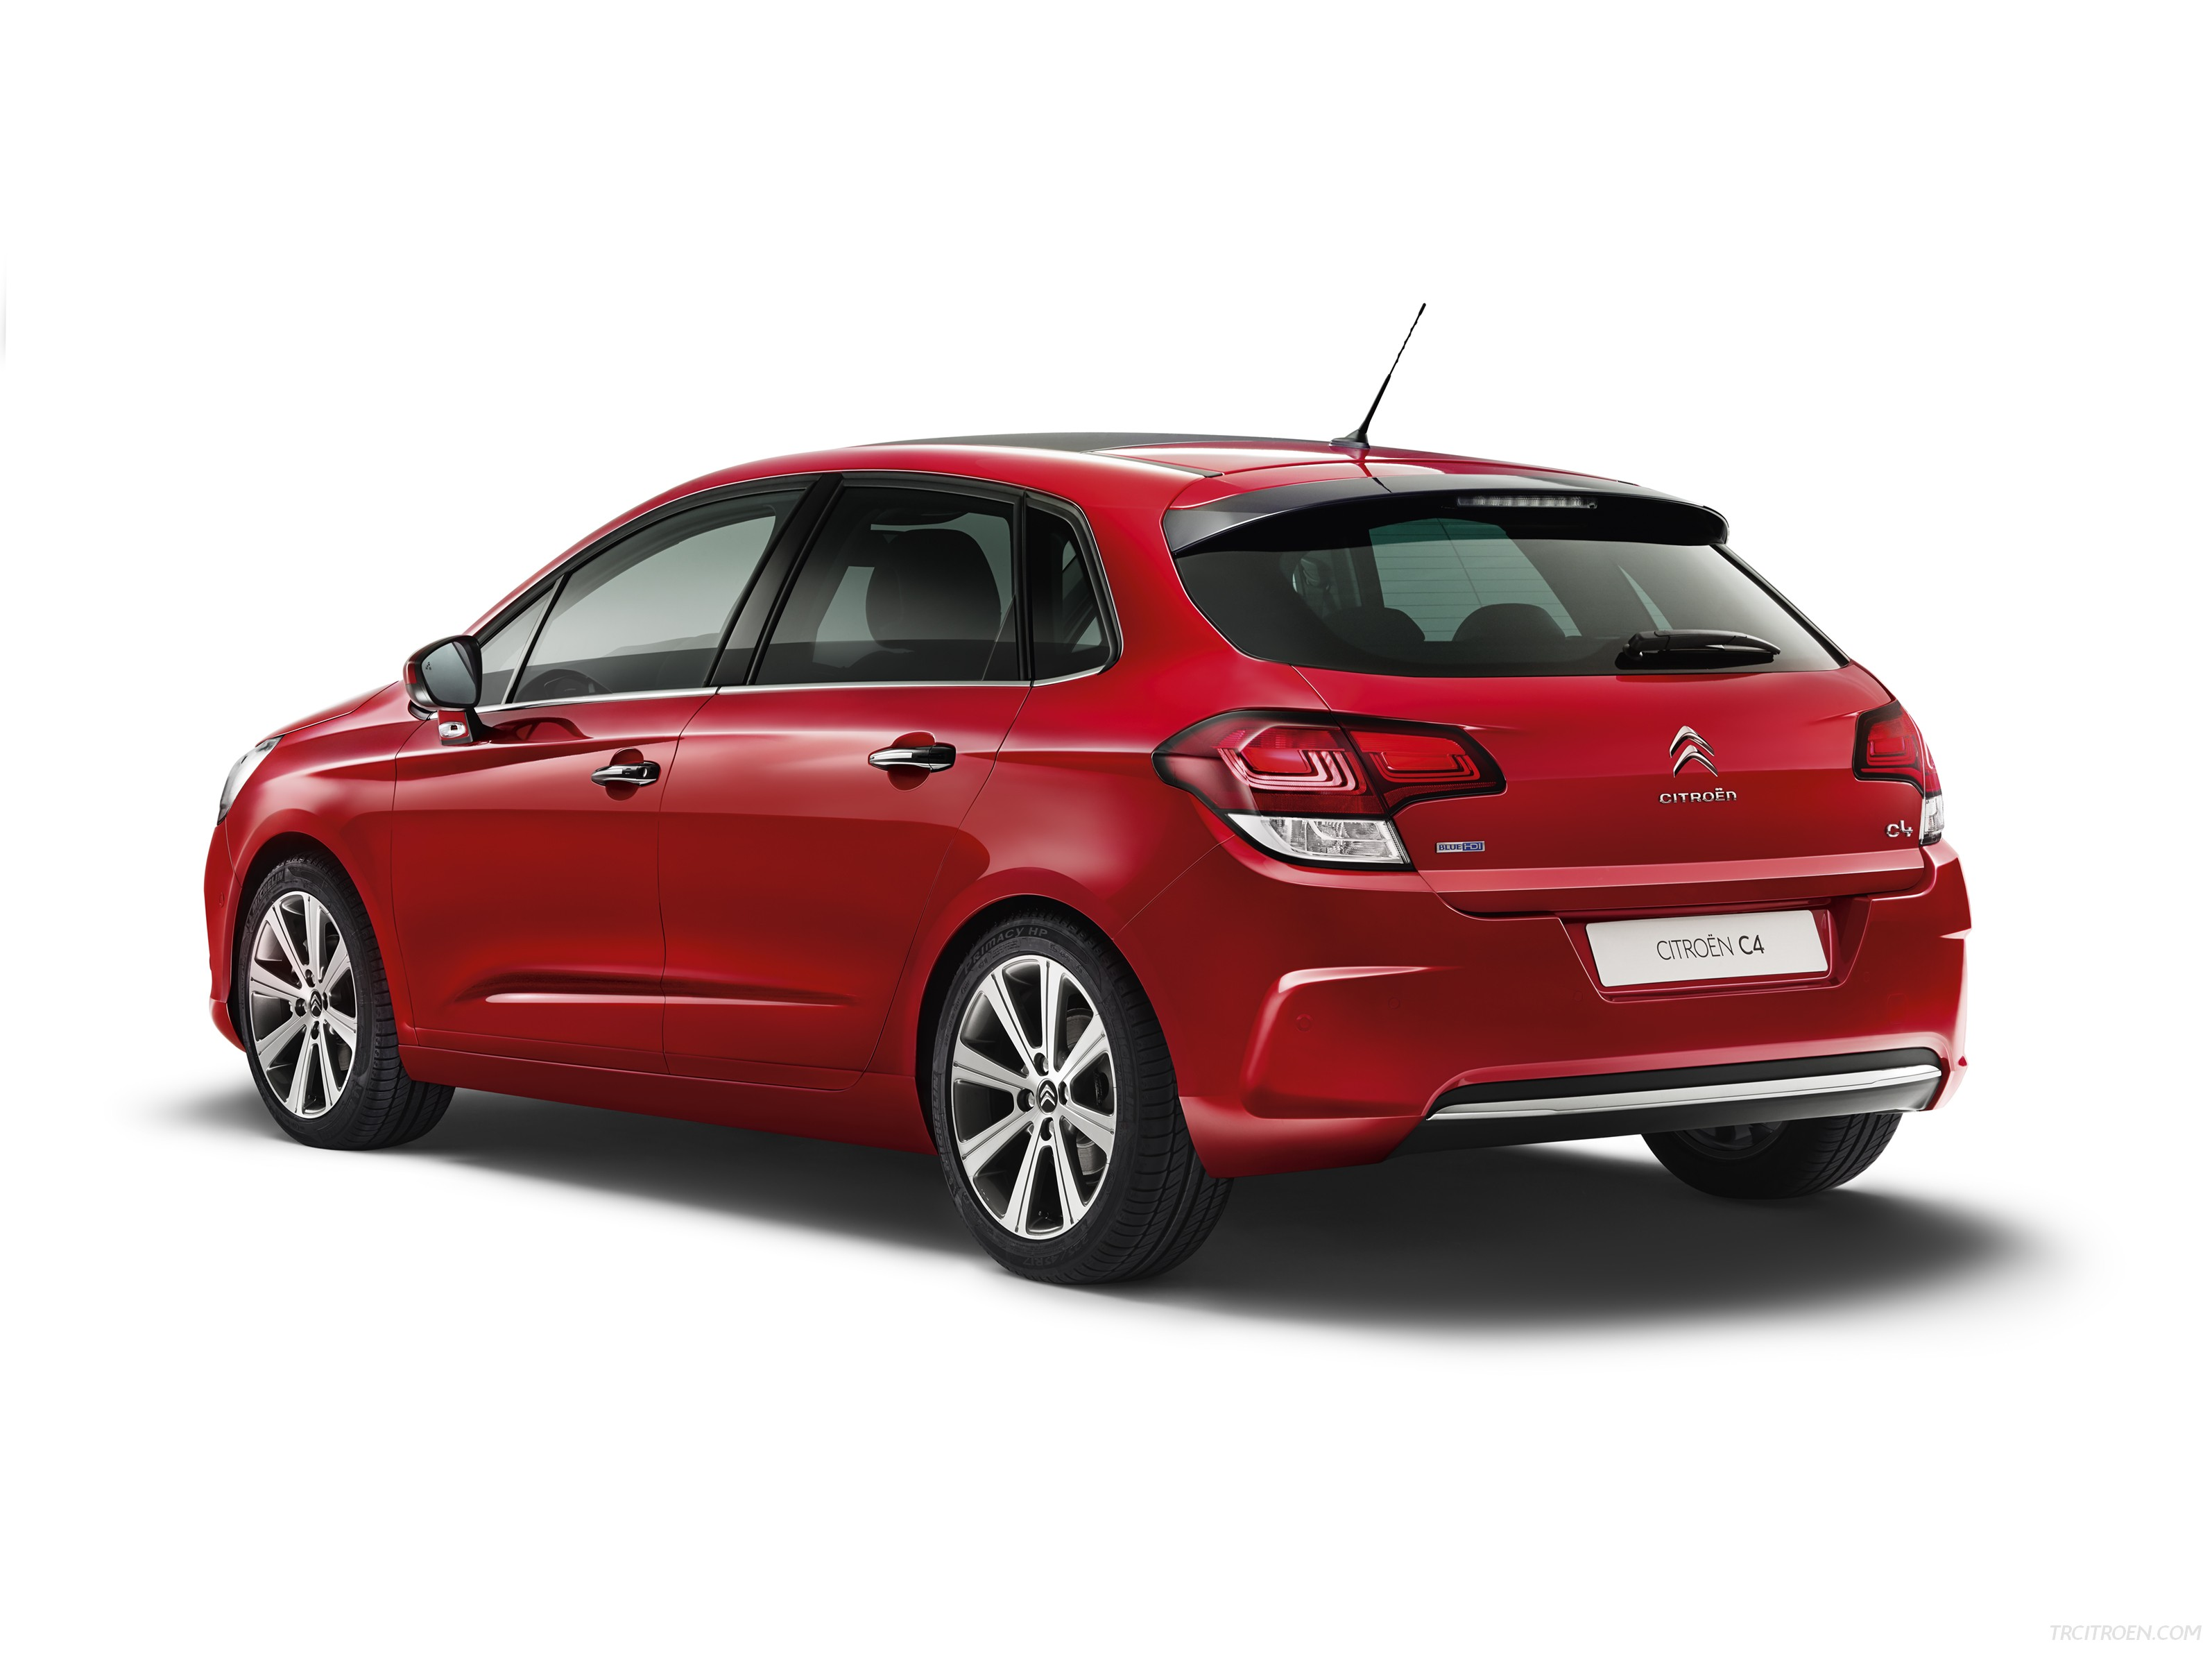 citroen c4 new model with 2015 Citroen C4 Review on Citroen Spacetourer And Spacetourer Hyphen Concept besides Review furthermore Watch together with Citroen Ds4 147 together with Vauxhall Zafira Tourer.